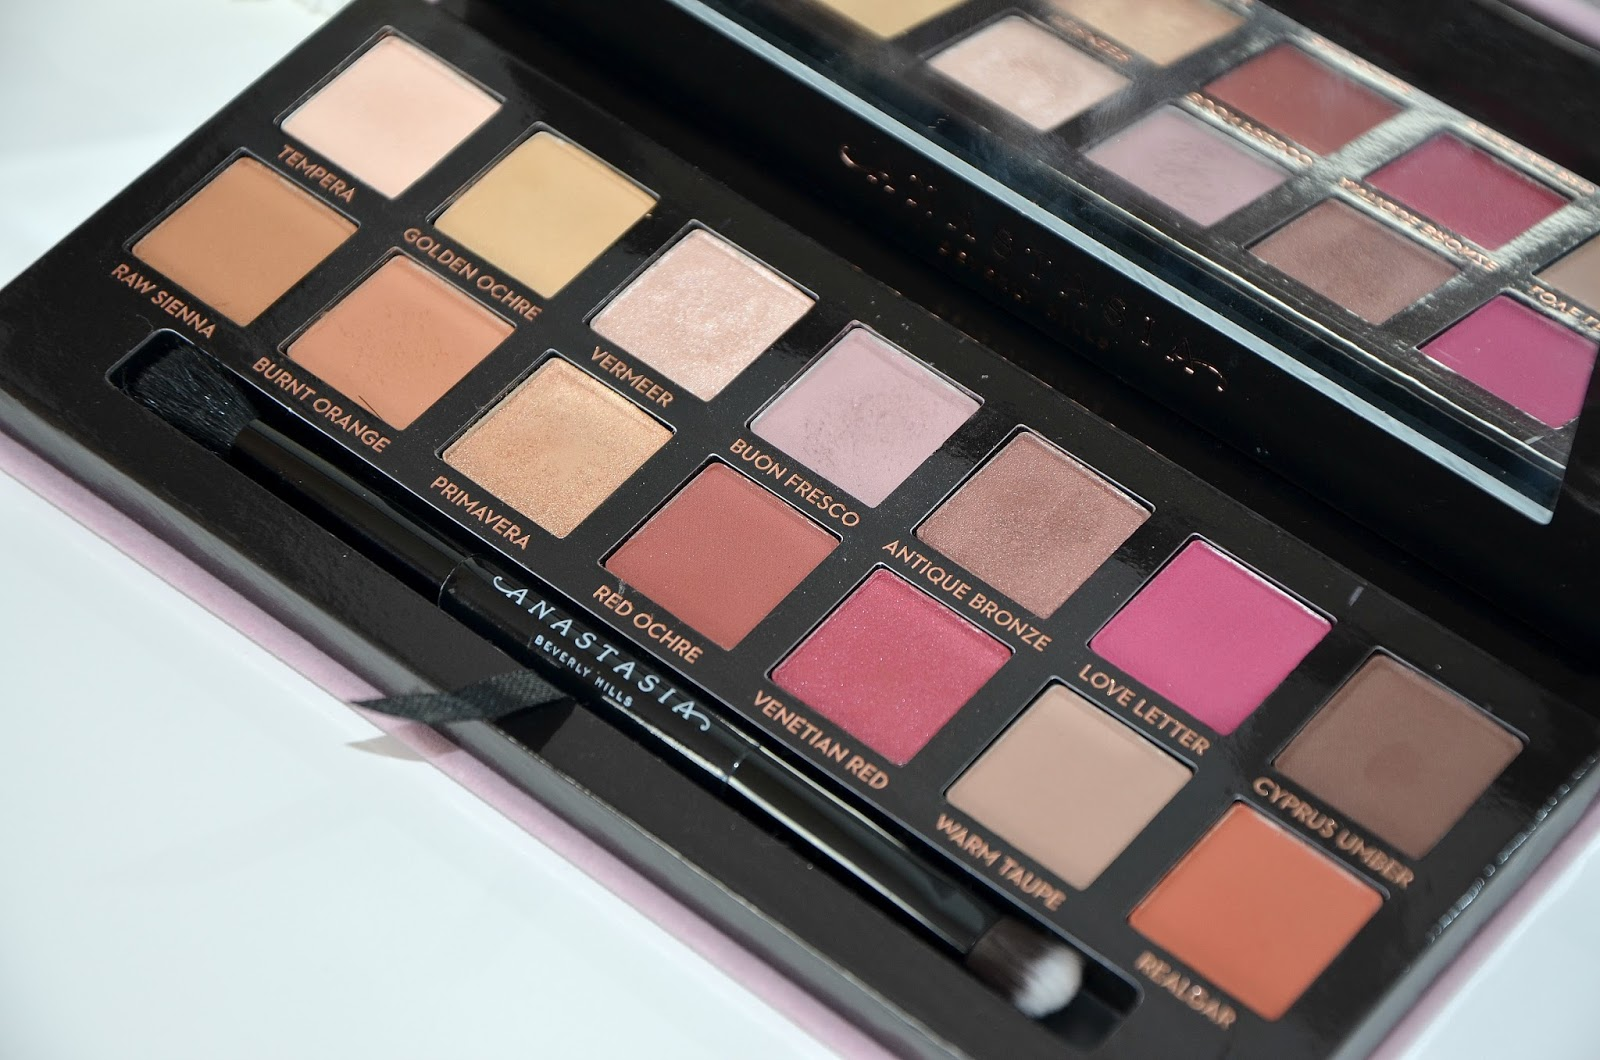 Anastasia Beverly Hills ABH modern renaissance eyeshadow palette fourteen shades from neutral to berry tones